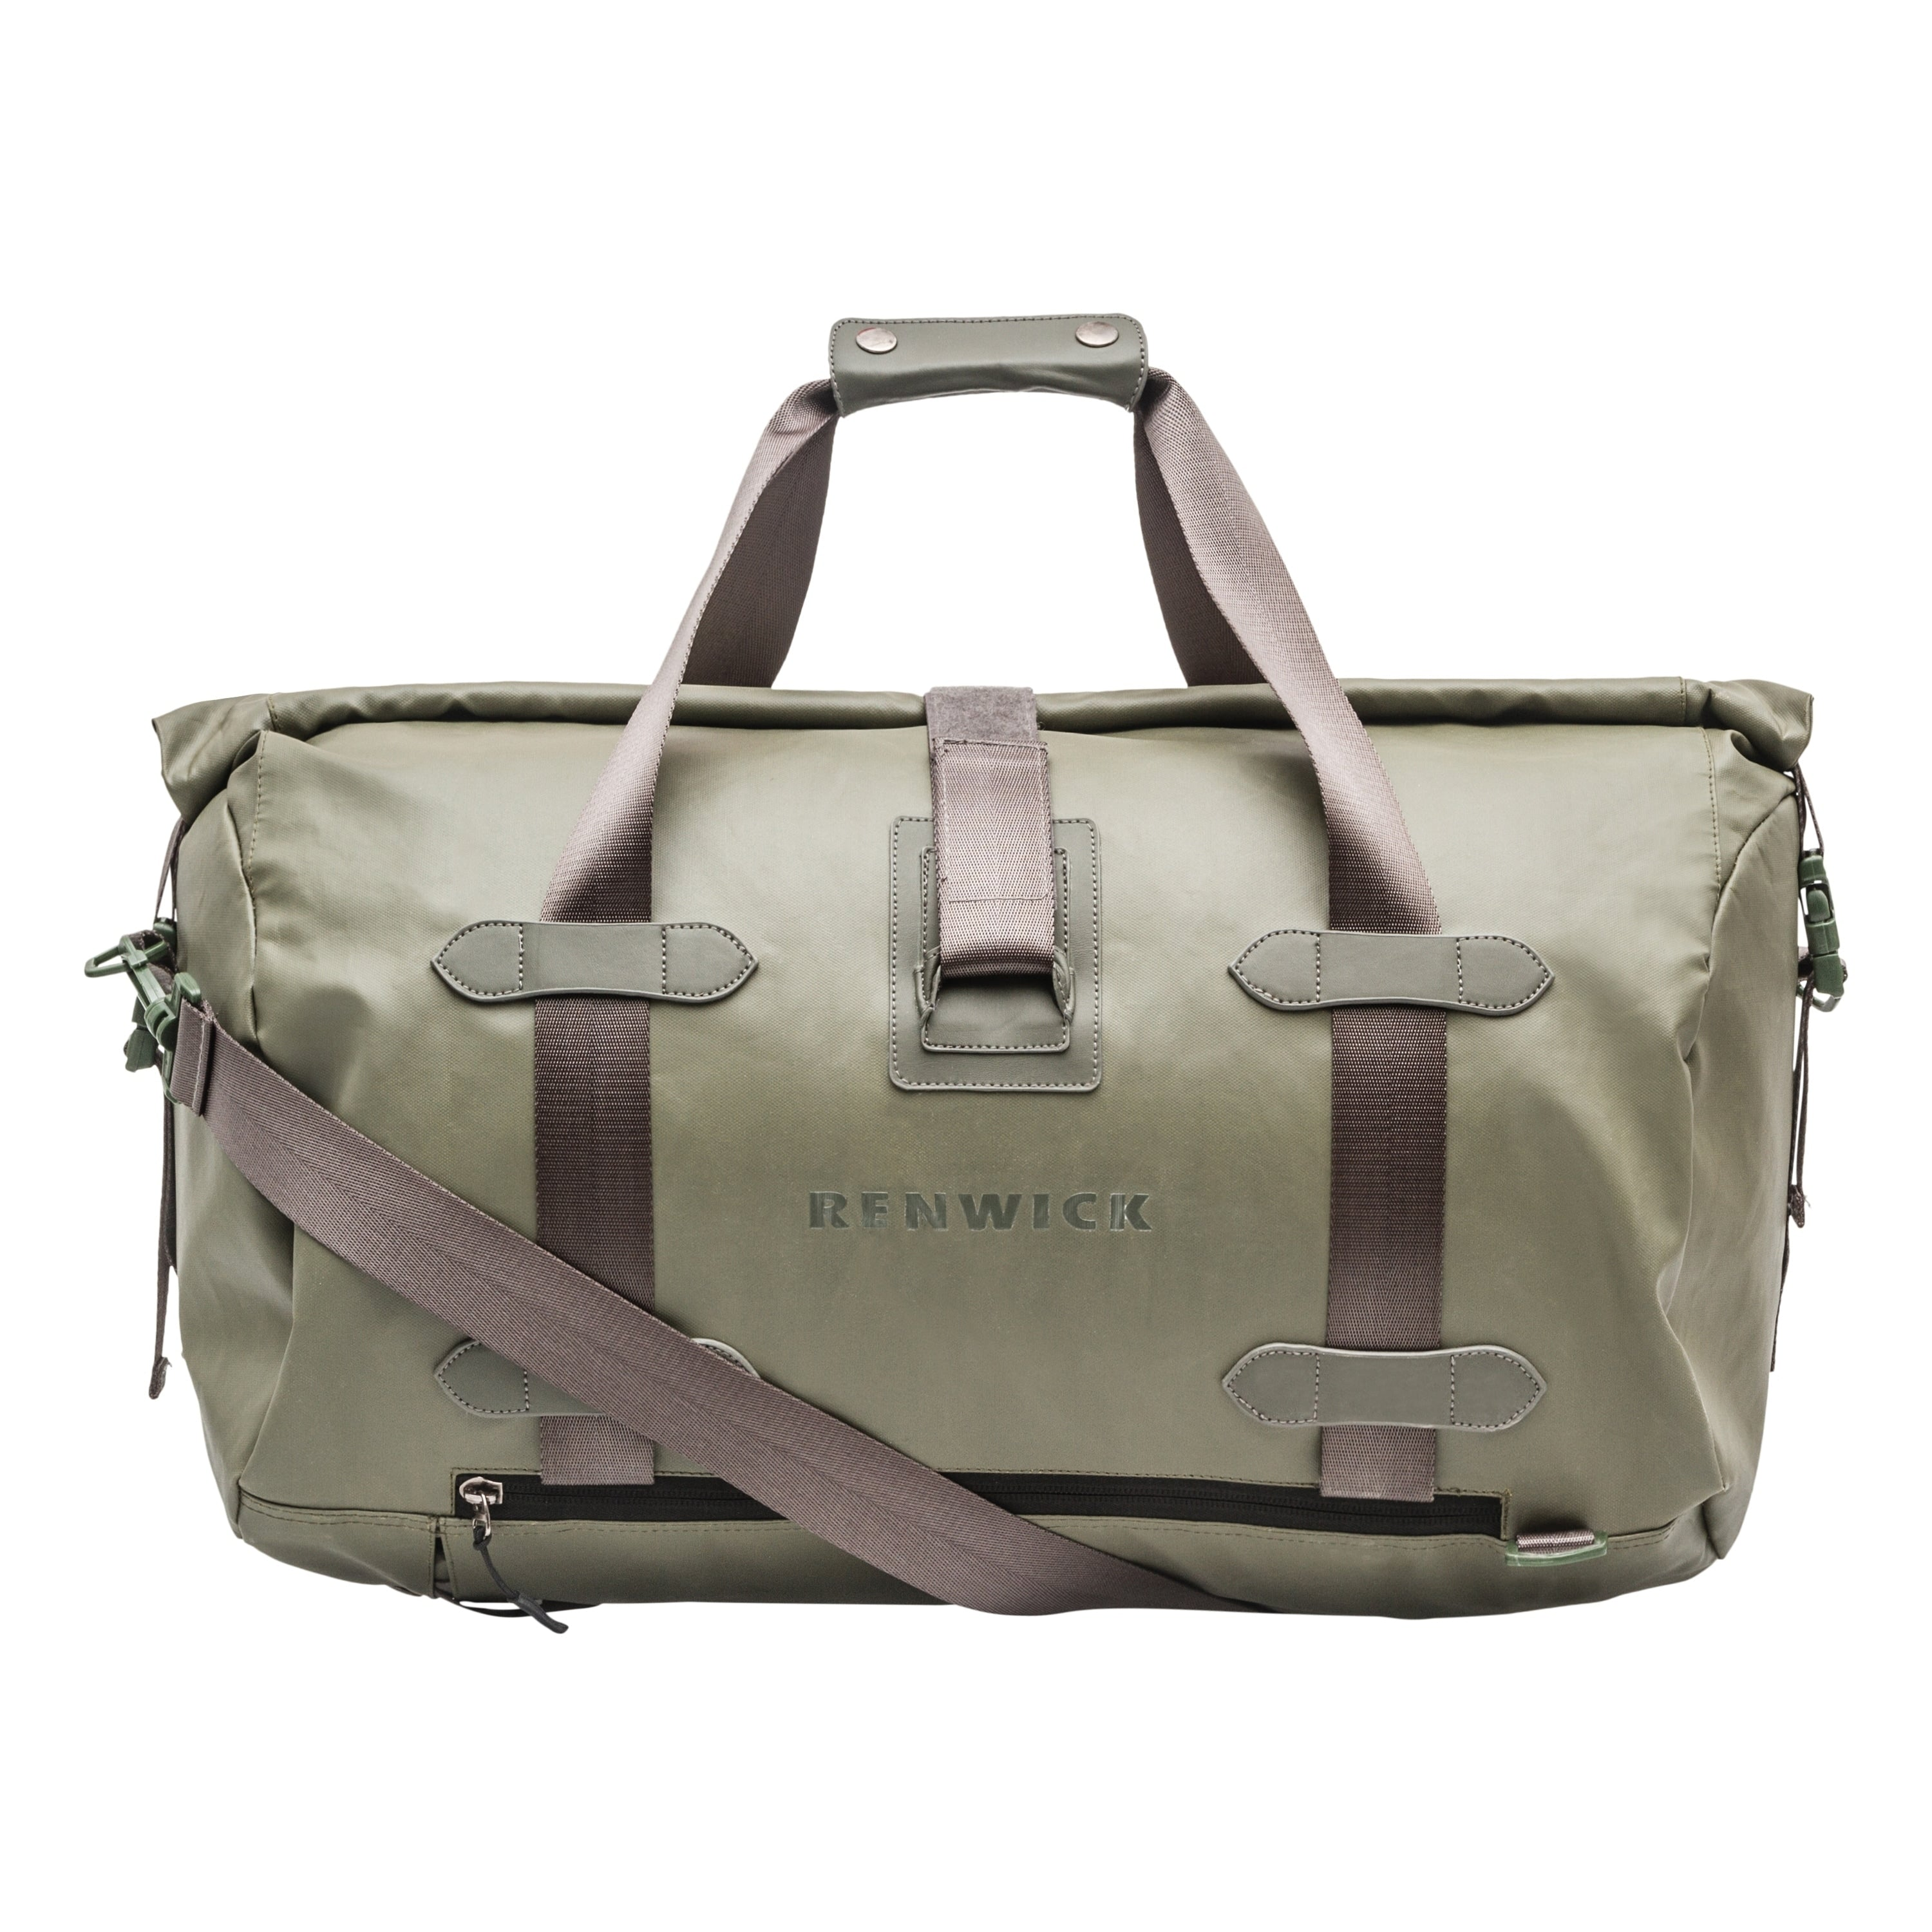 Roll Top Duffle W/ Backpack Straps Green Solid Polyester Laptop Compartment - Diamond Home USA